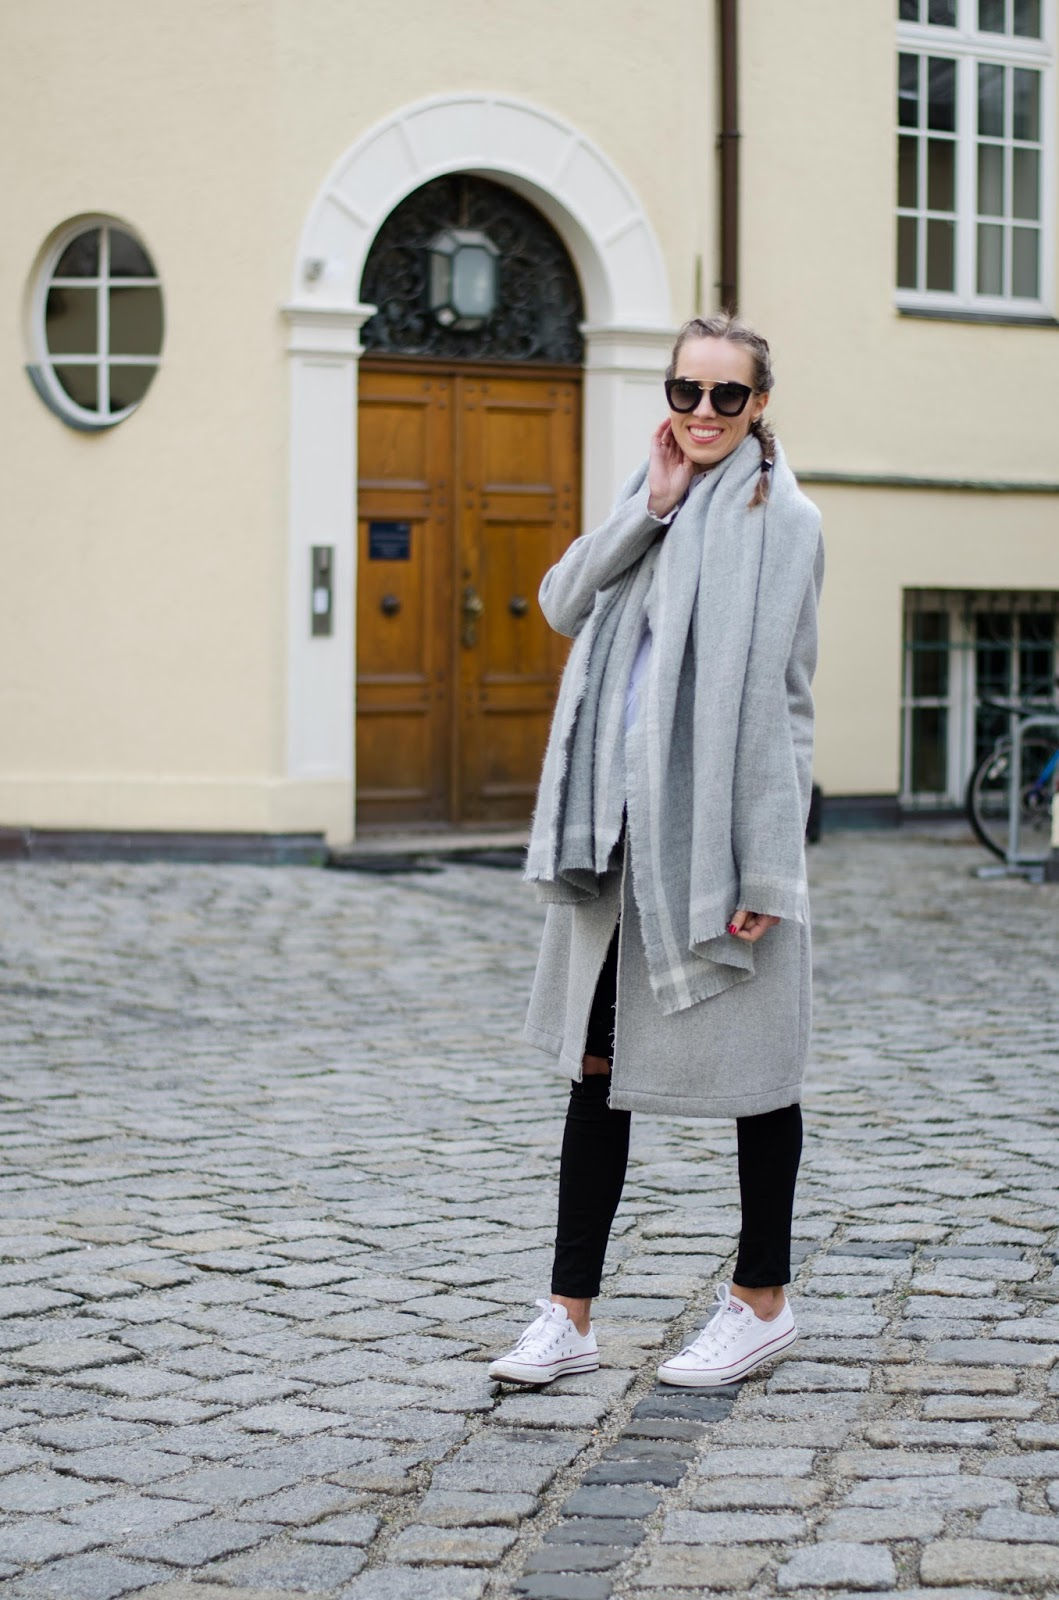 kristjaana gray coat white converse sneakers minimalist casual outfit french braids